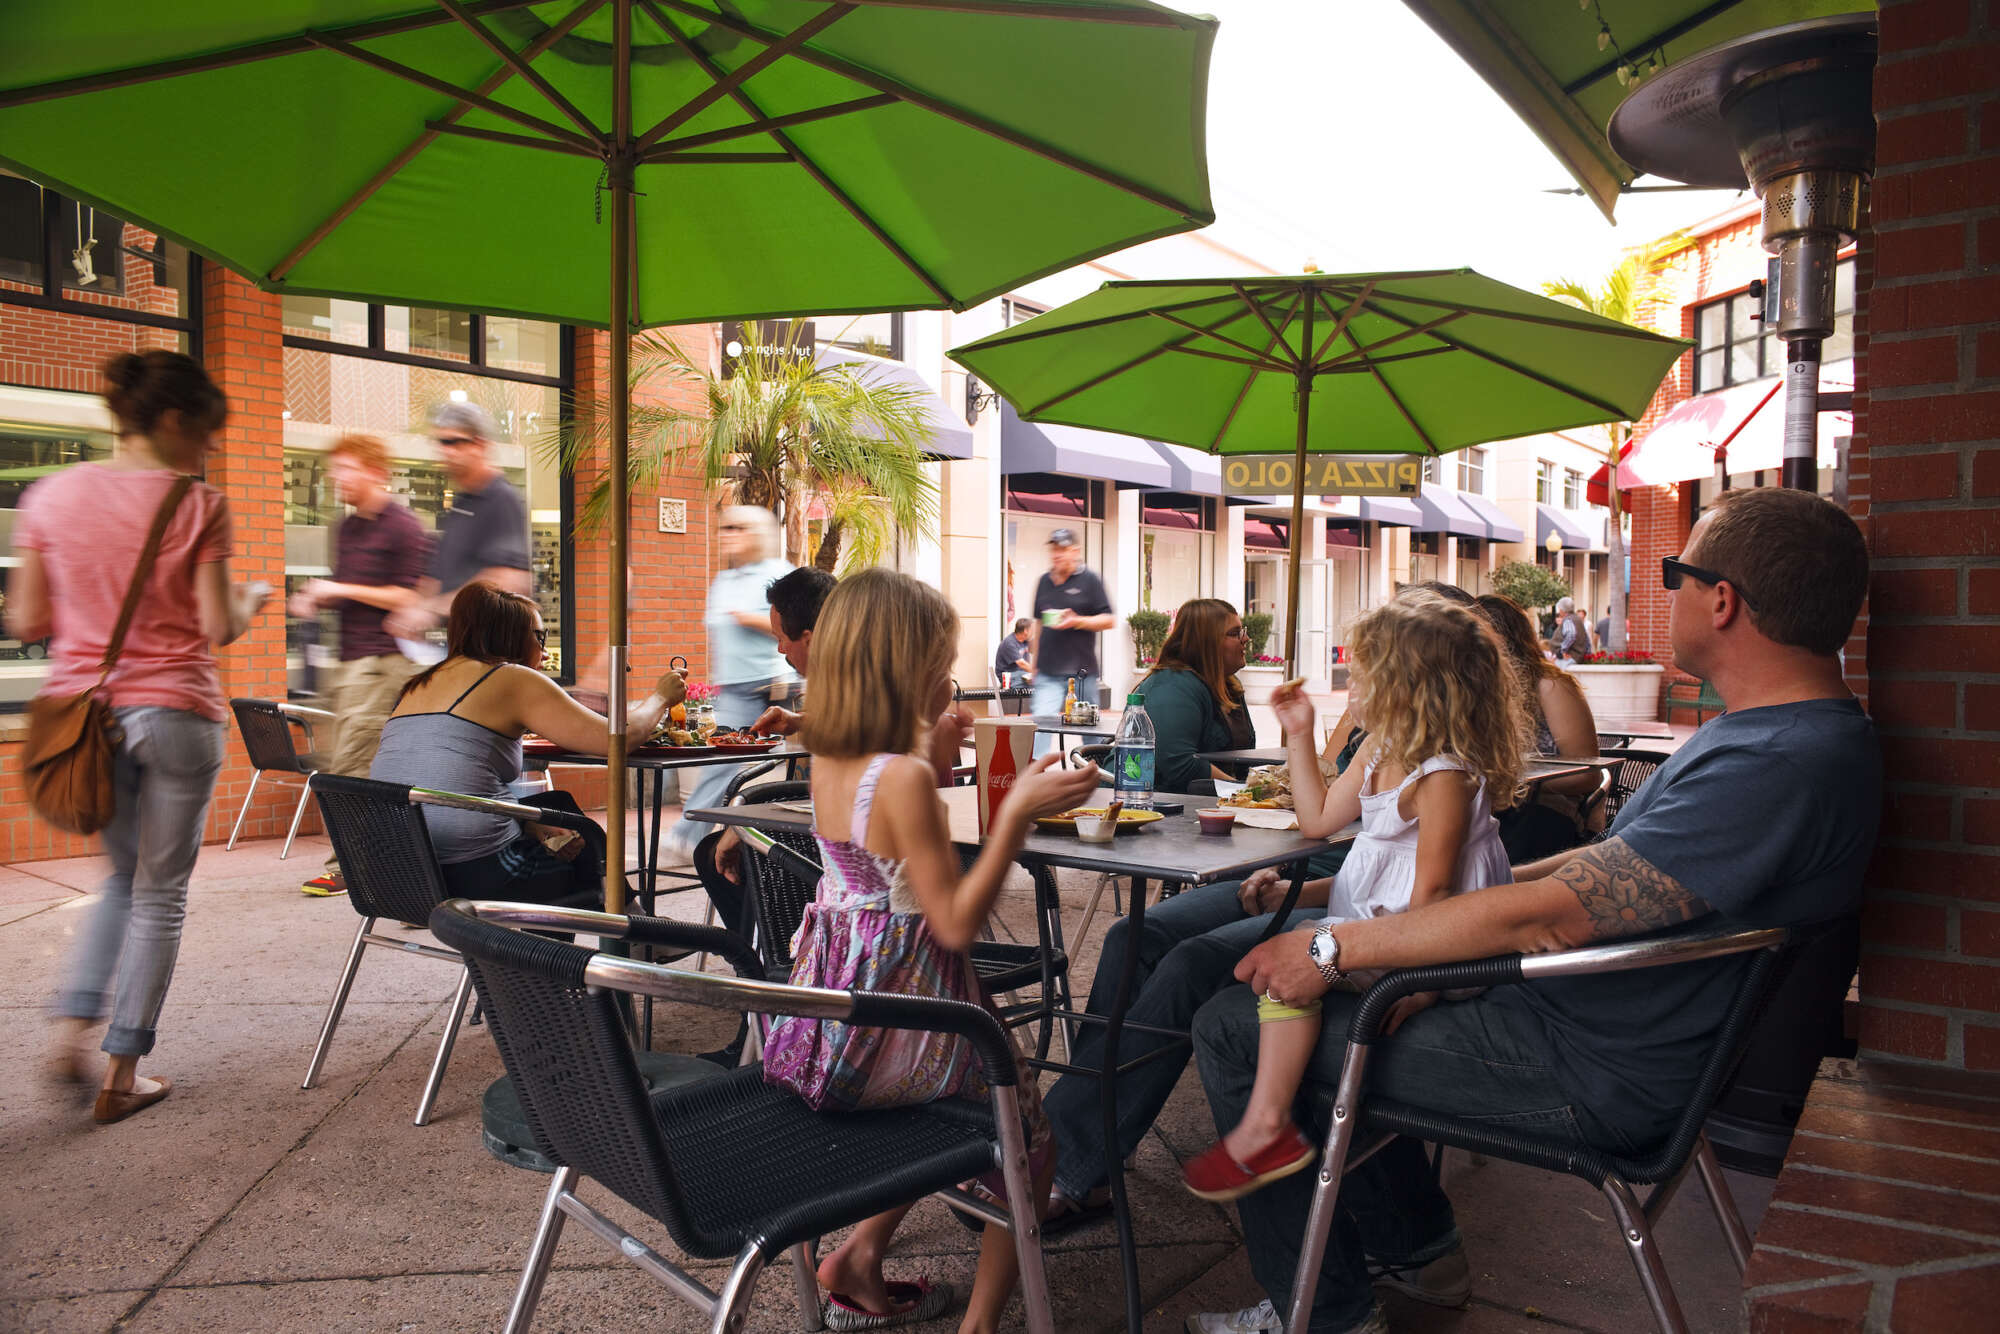 People sitting at outdoor cafe at The San Luis Obispo Collection